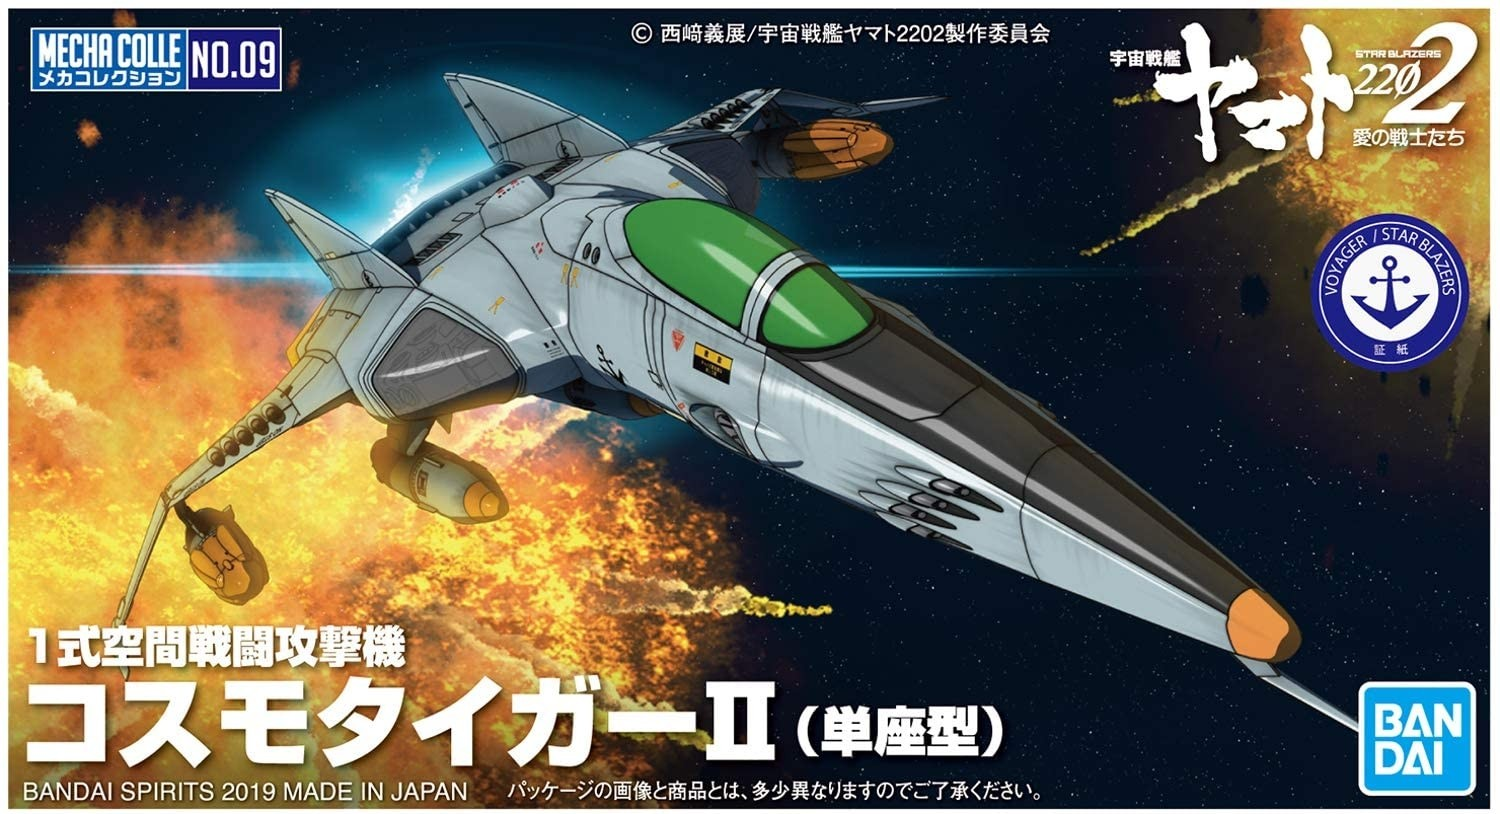 SPACE BATTLESHIP YAMATO 2202 MECHA COLLE No.09 - TYPE 1 SPACE FIGHTER ATTACK CRAFT COSMO TIGER (Single Seated Type) - PLASTIC MODEL KIT